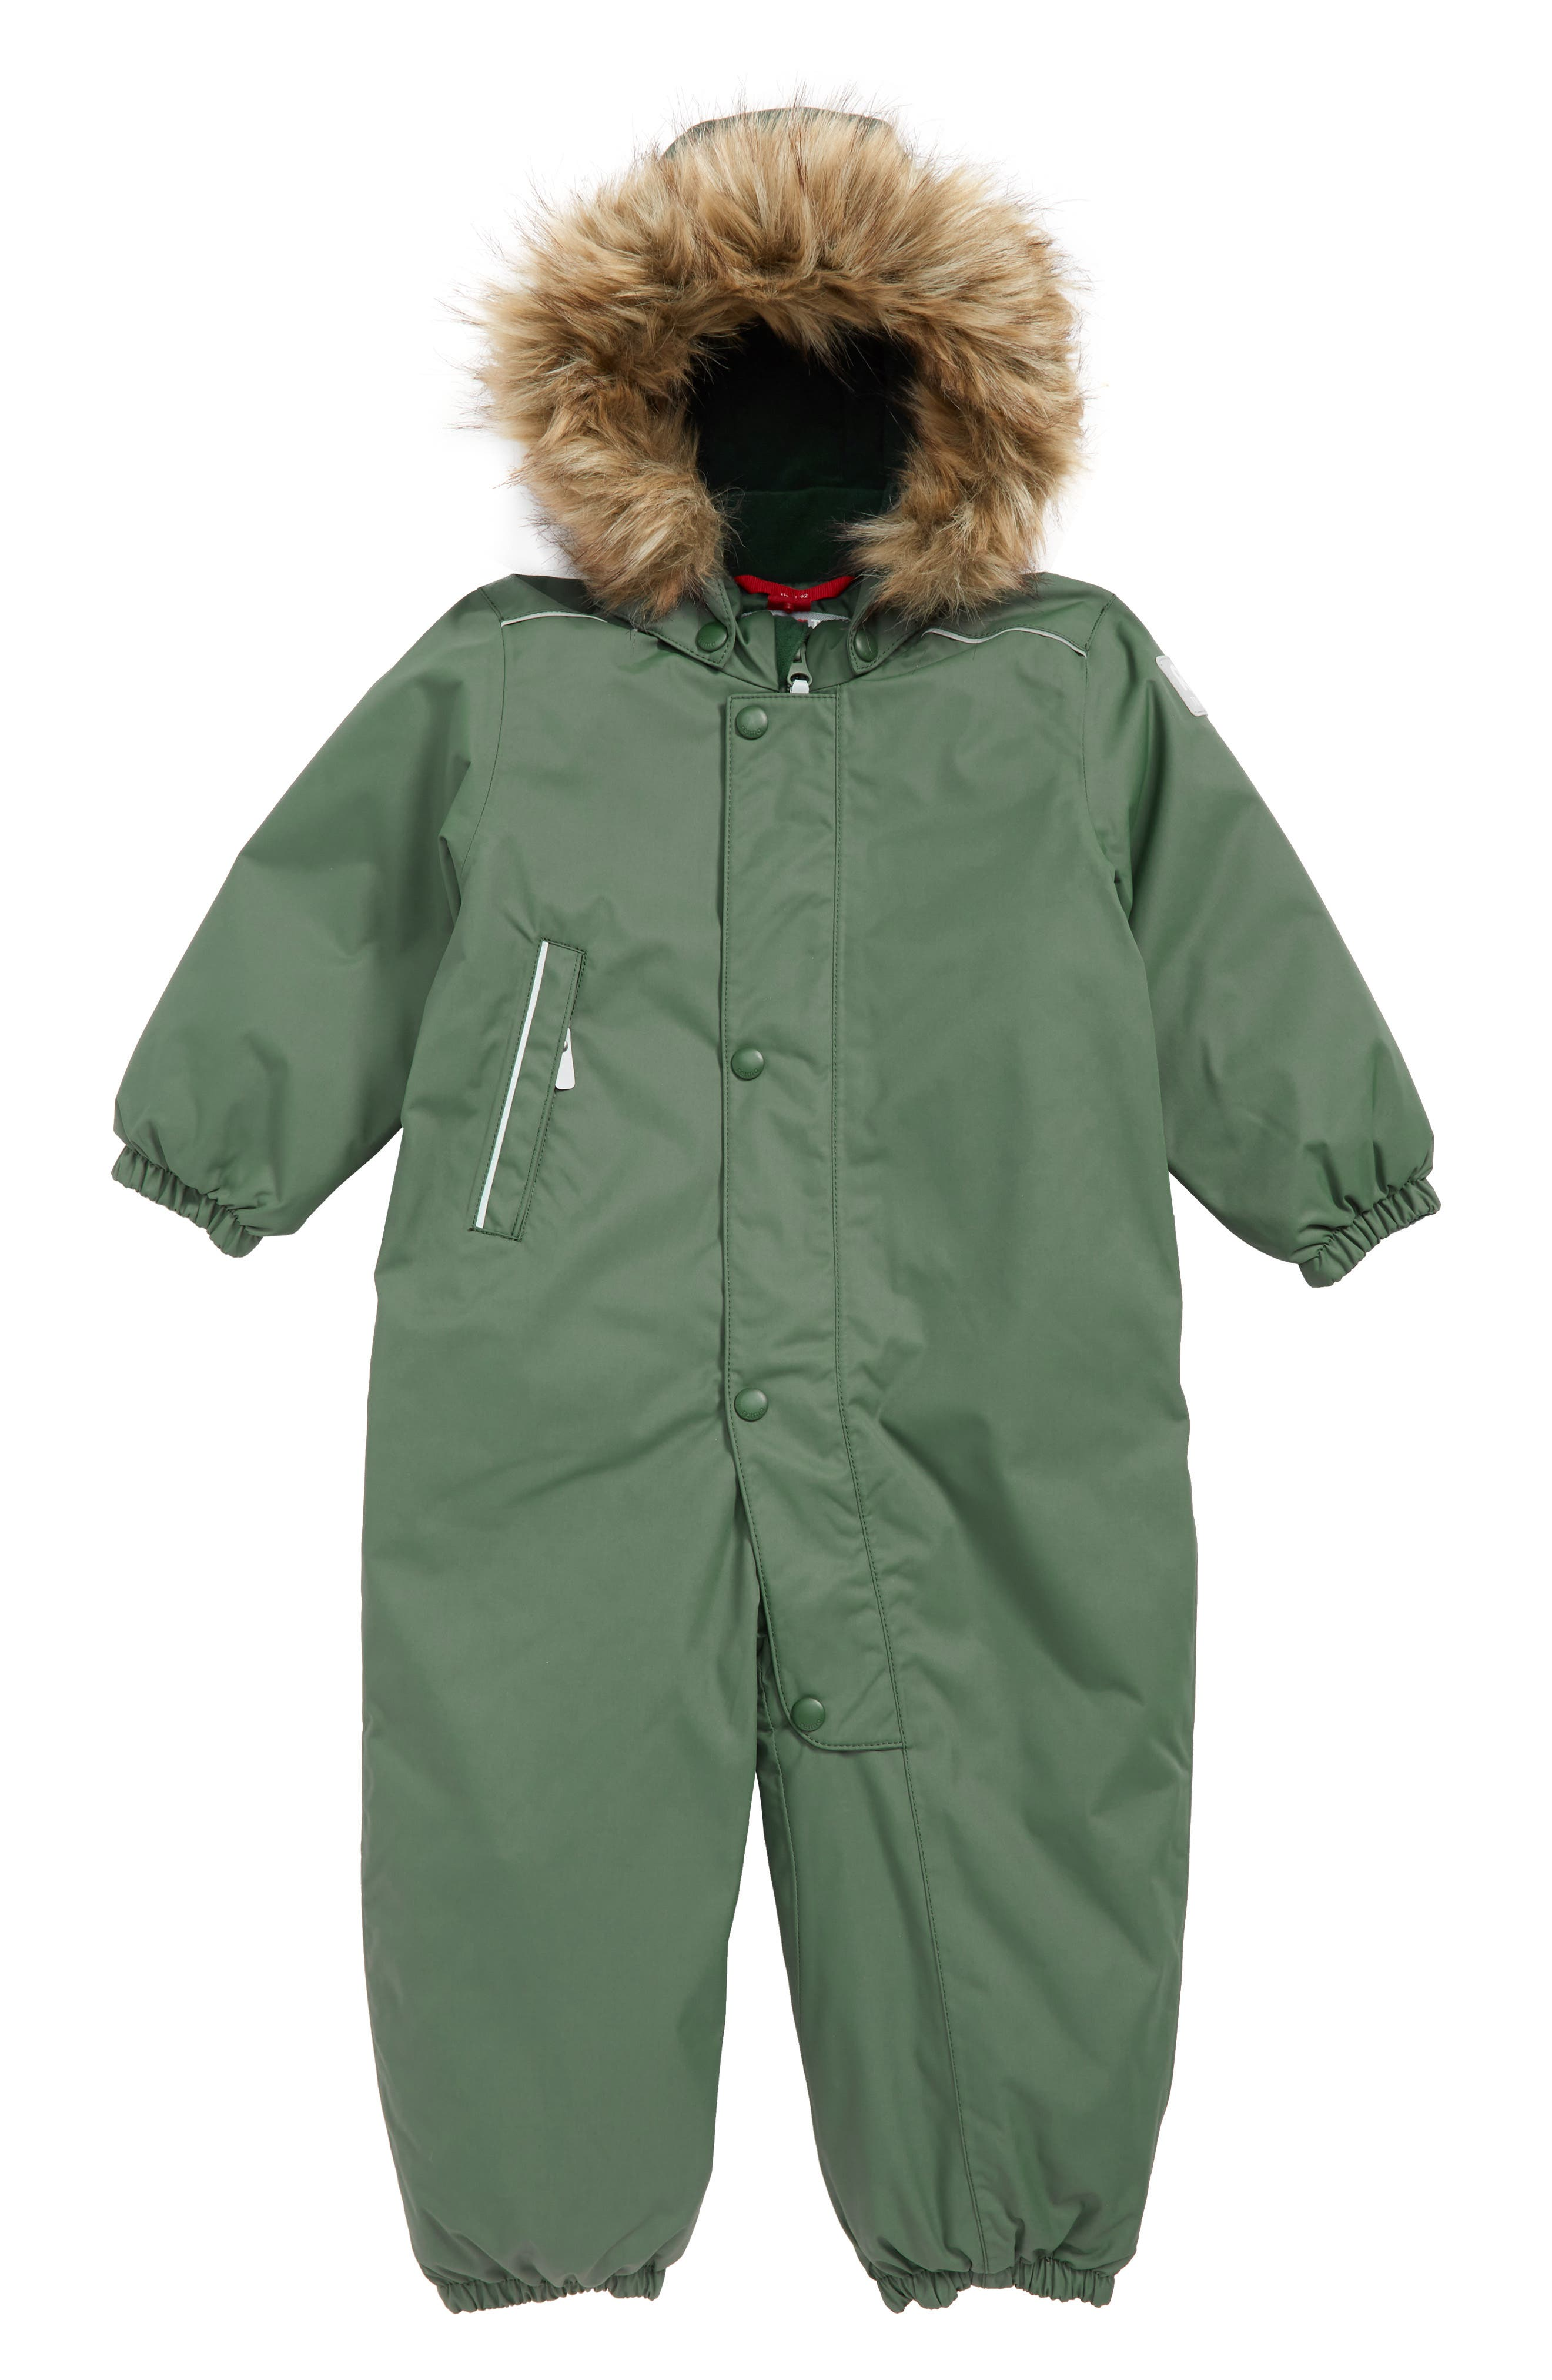 Gotland Reimatec<sup>®</sup> Waterproof Insulated Snow Suit with Faux Fur Trim,                             Main thumbnail 1, color,                             GREEN